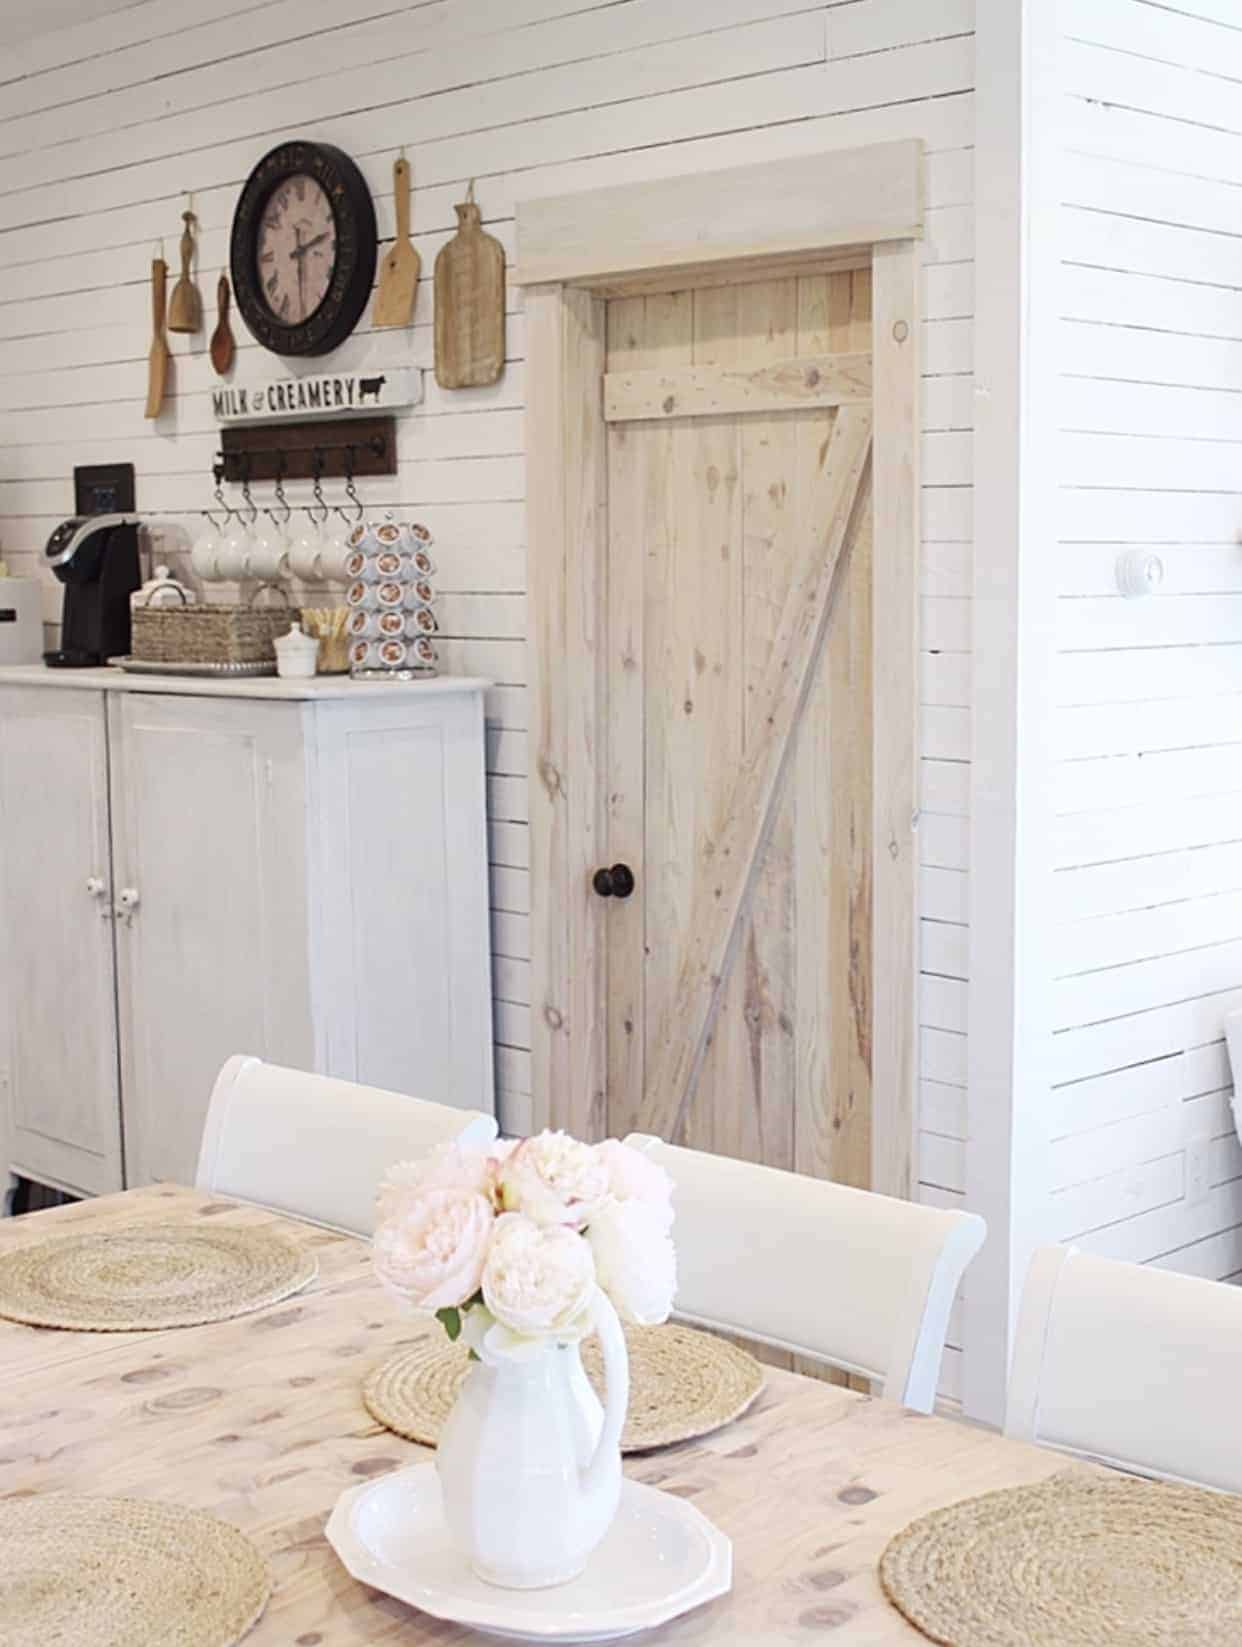 White shiplap walls with light wood door that was barn door style, cutting boards hung for wall decor above a kitchen cabinet used as a coffee bar and a corner of the dining room table shown in the foreground